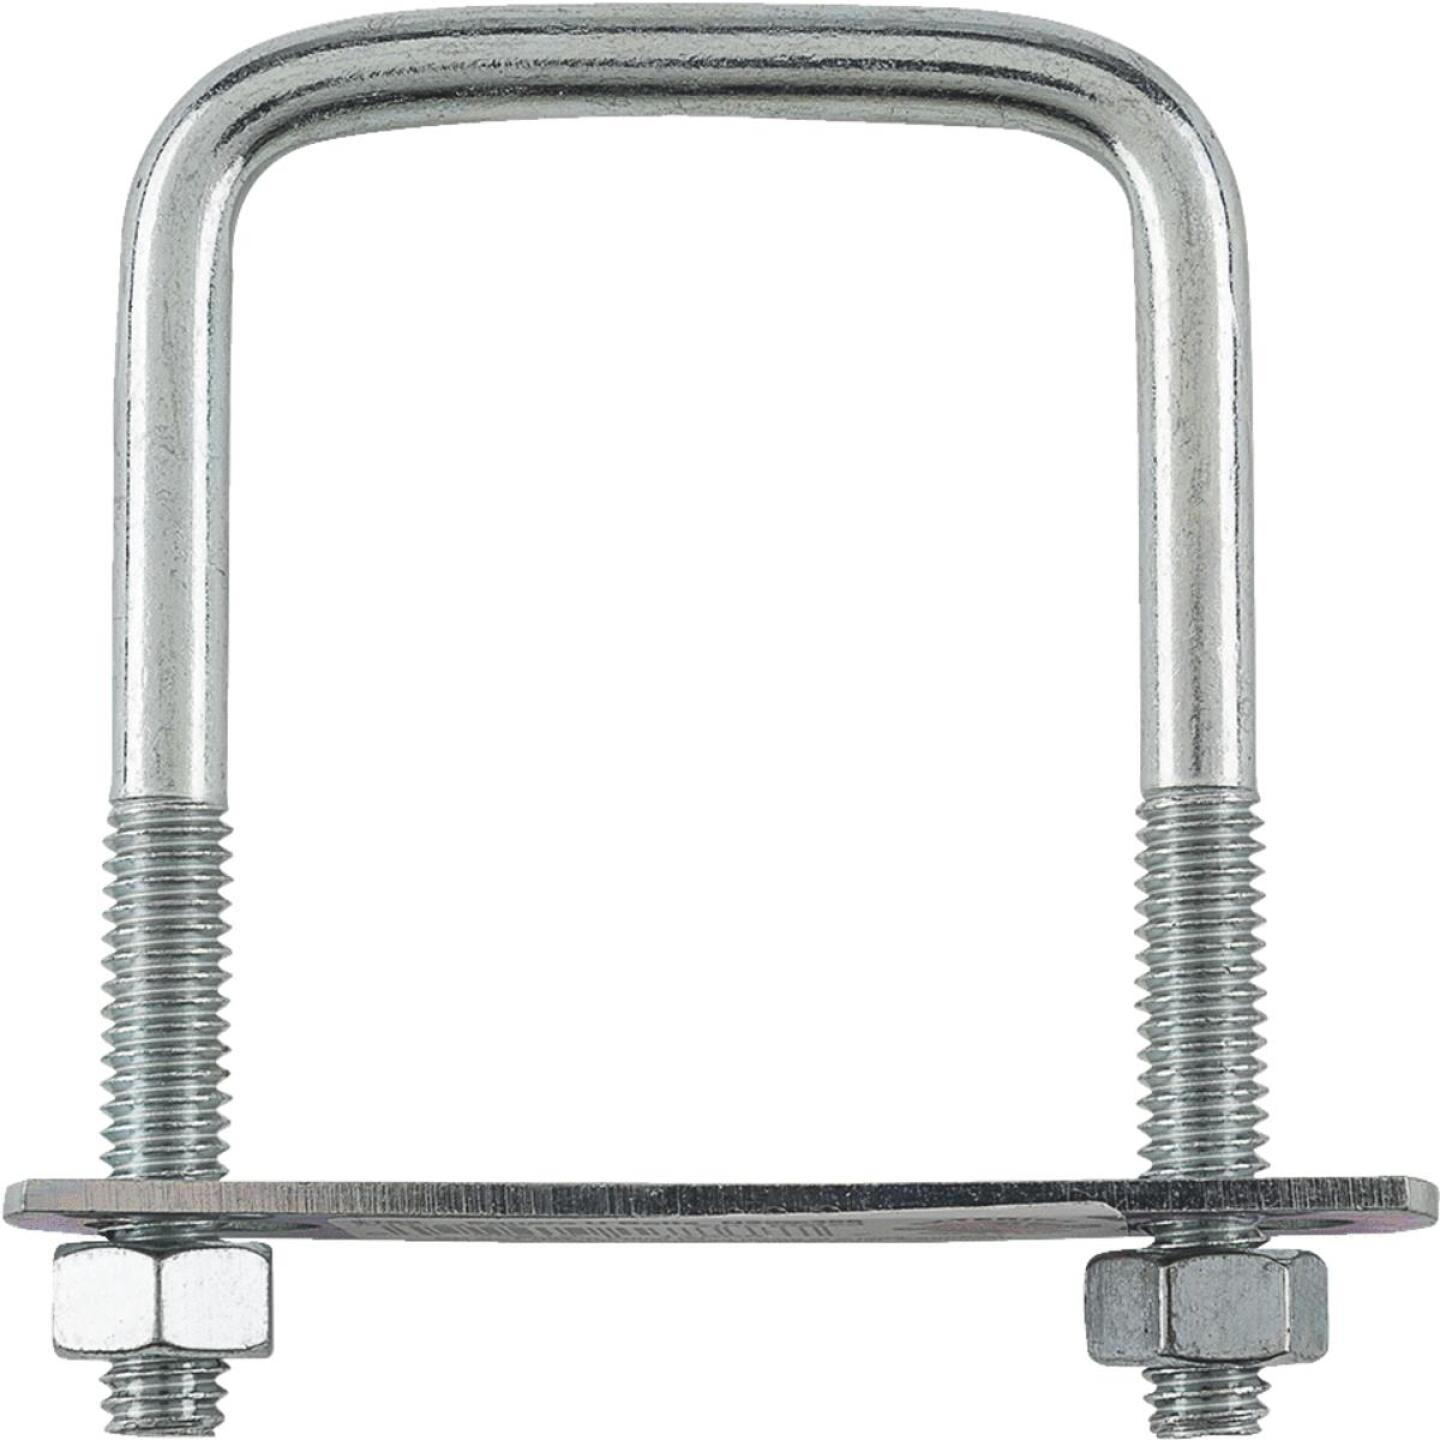 National 5/16 In. x 2 In. x 3 In. Zinc Square U Bolt Image 2